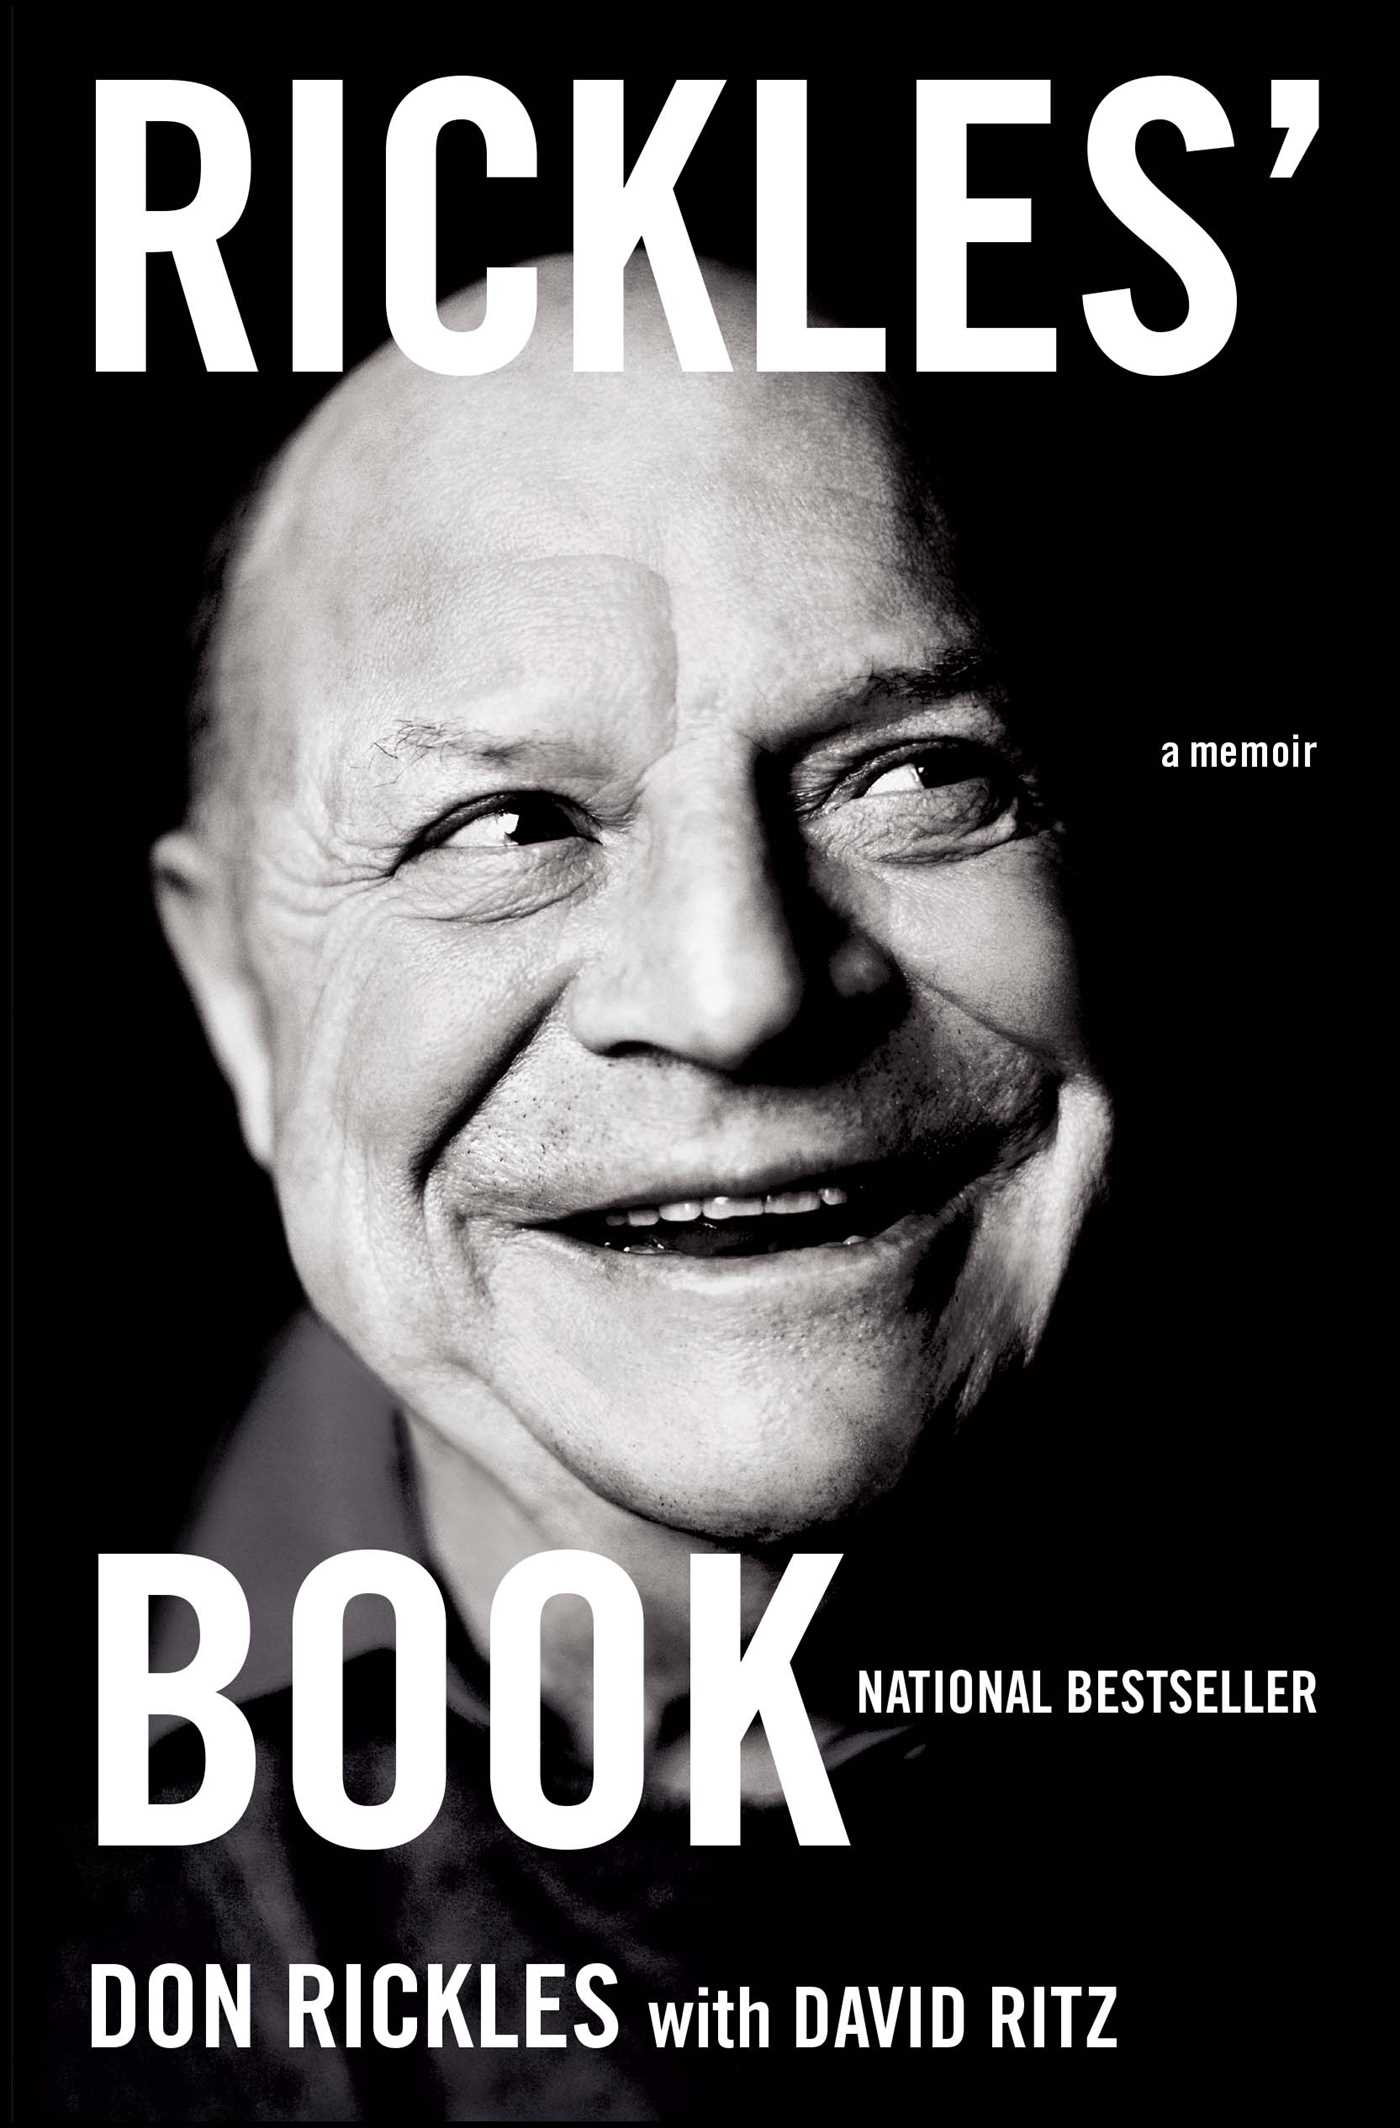 Rickles-book-9780743293068_hr